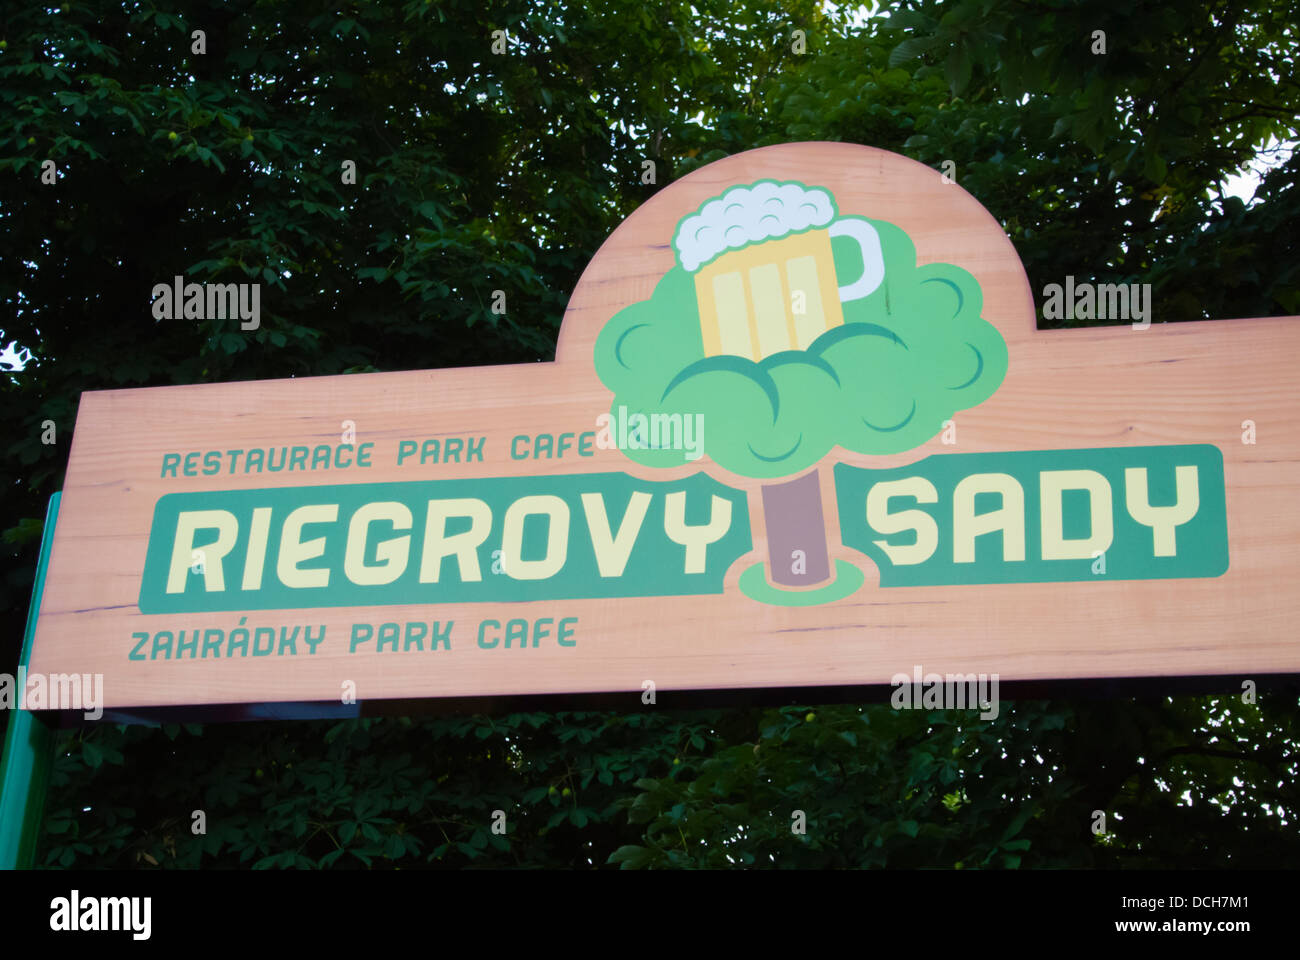 Riegrovy Sady beer garden exterior Vinohrady district Prague Czech Republic Europe - Stock Image